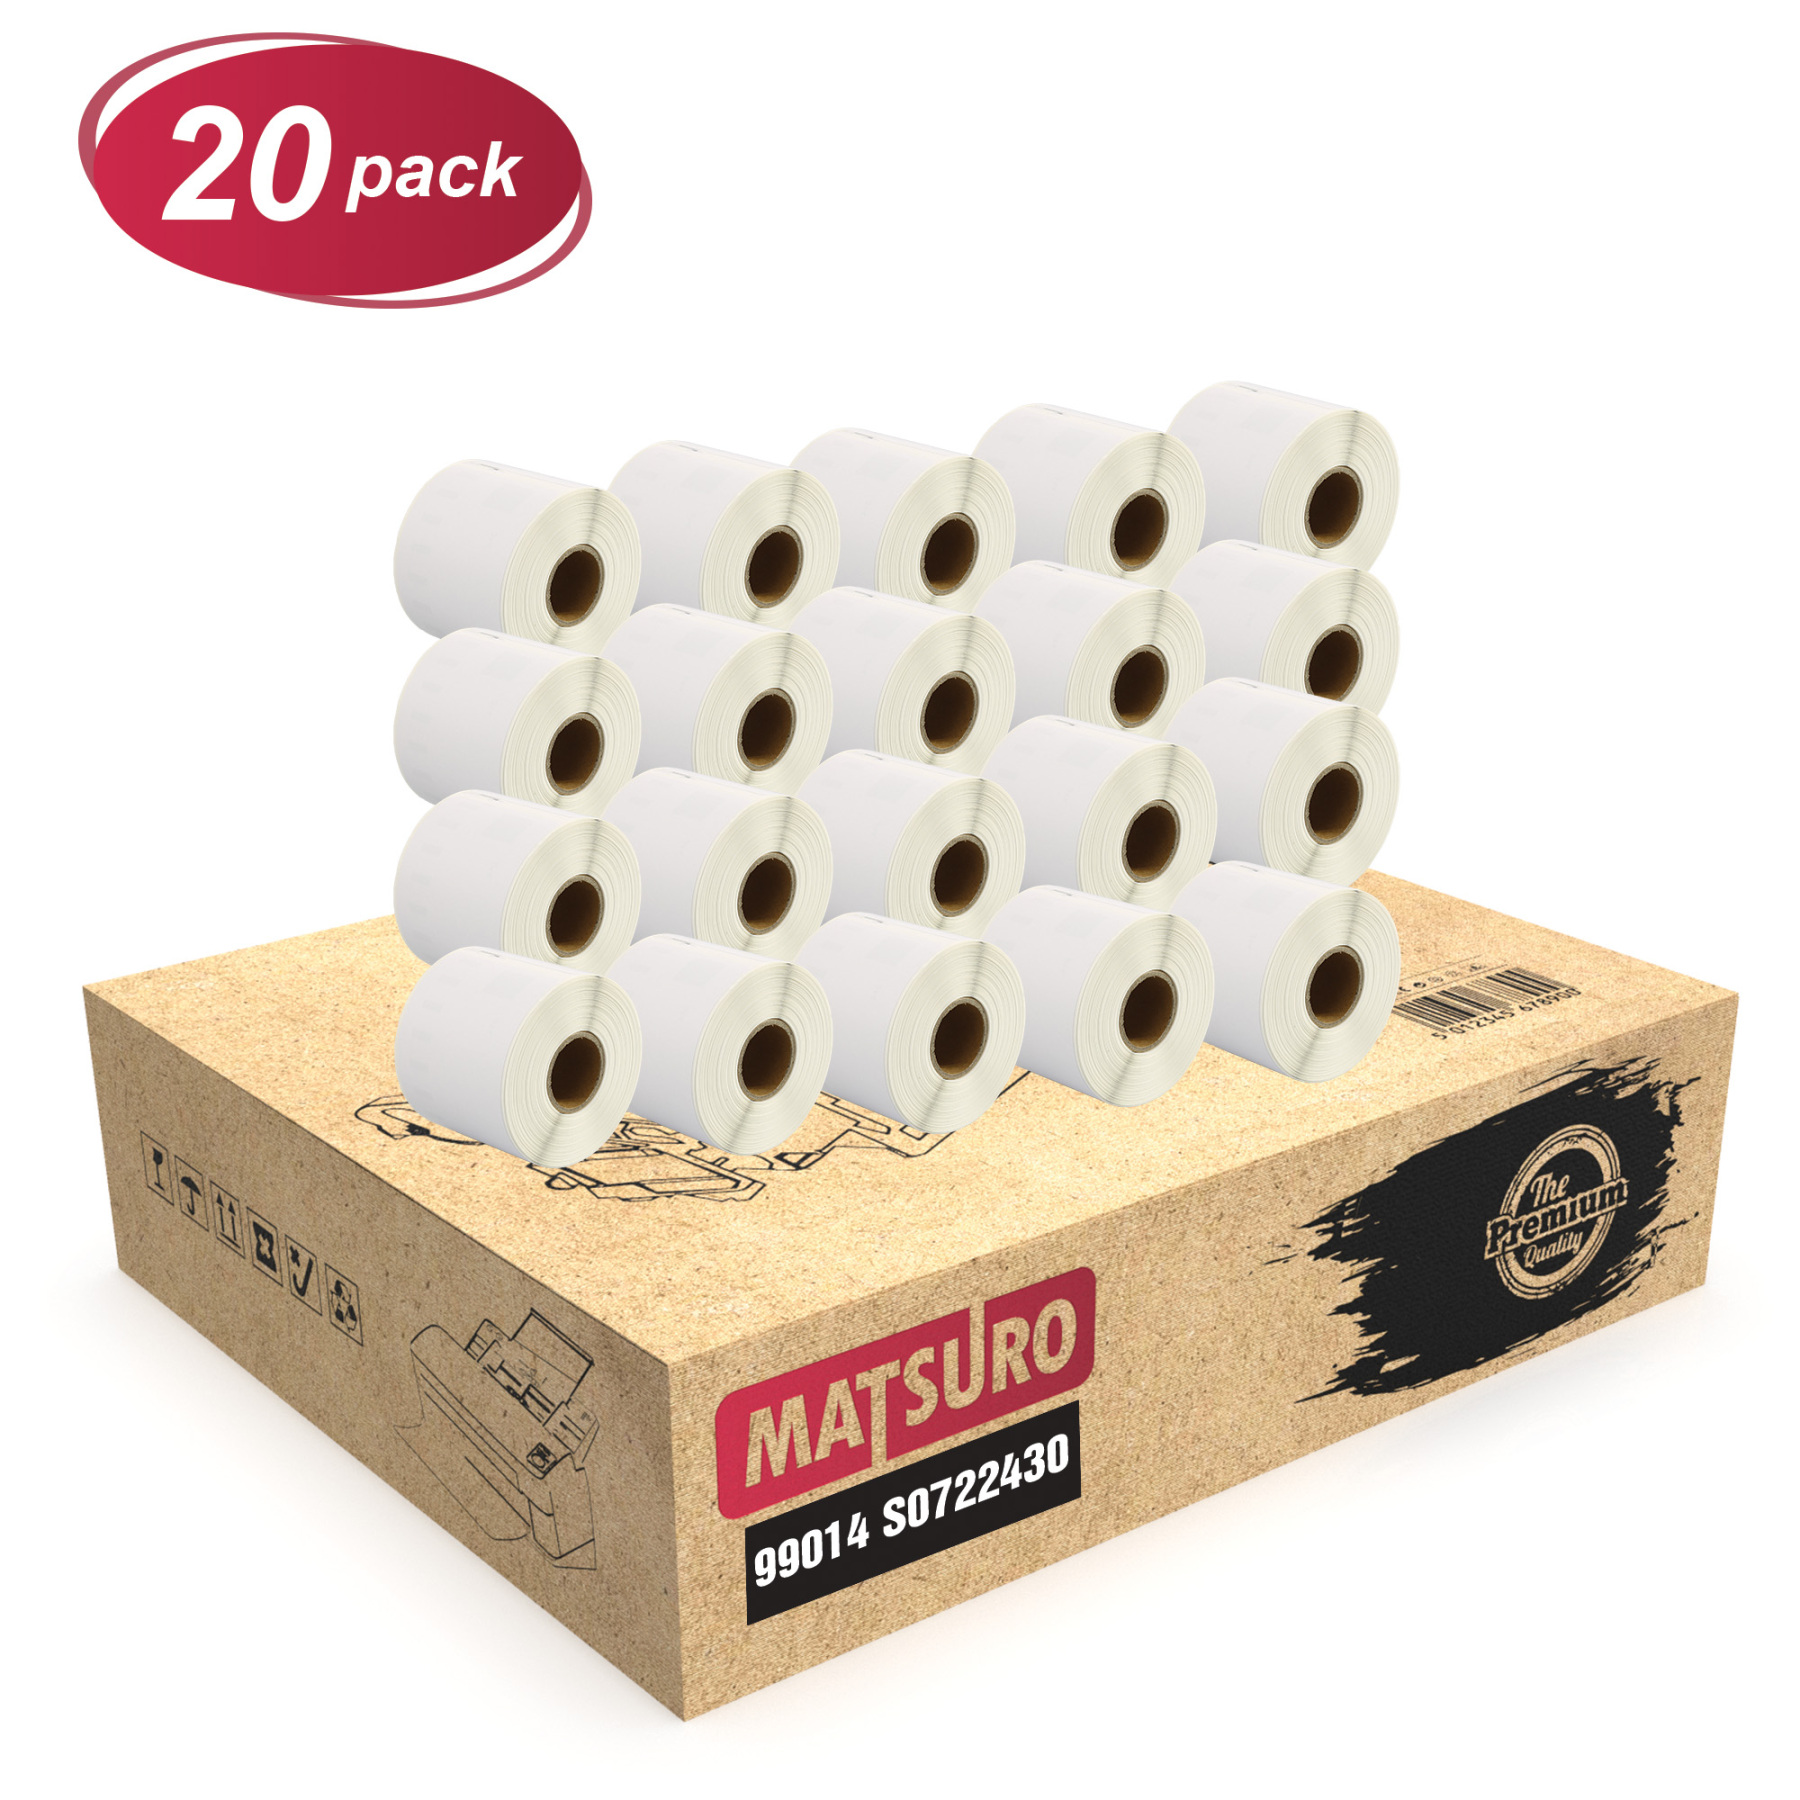 Original Matsuro   Compatible Rolls replacement for DYMO 99014 S0722430 ( 54mm x 101mm)